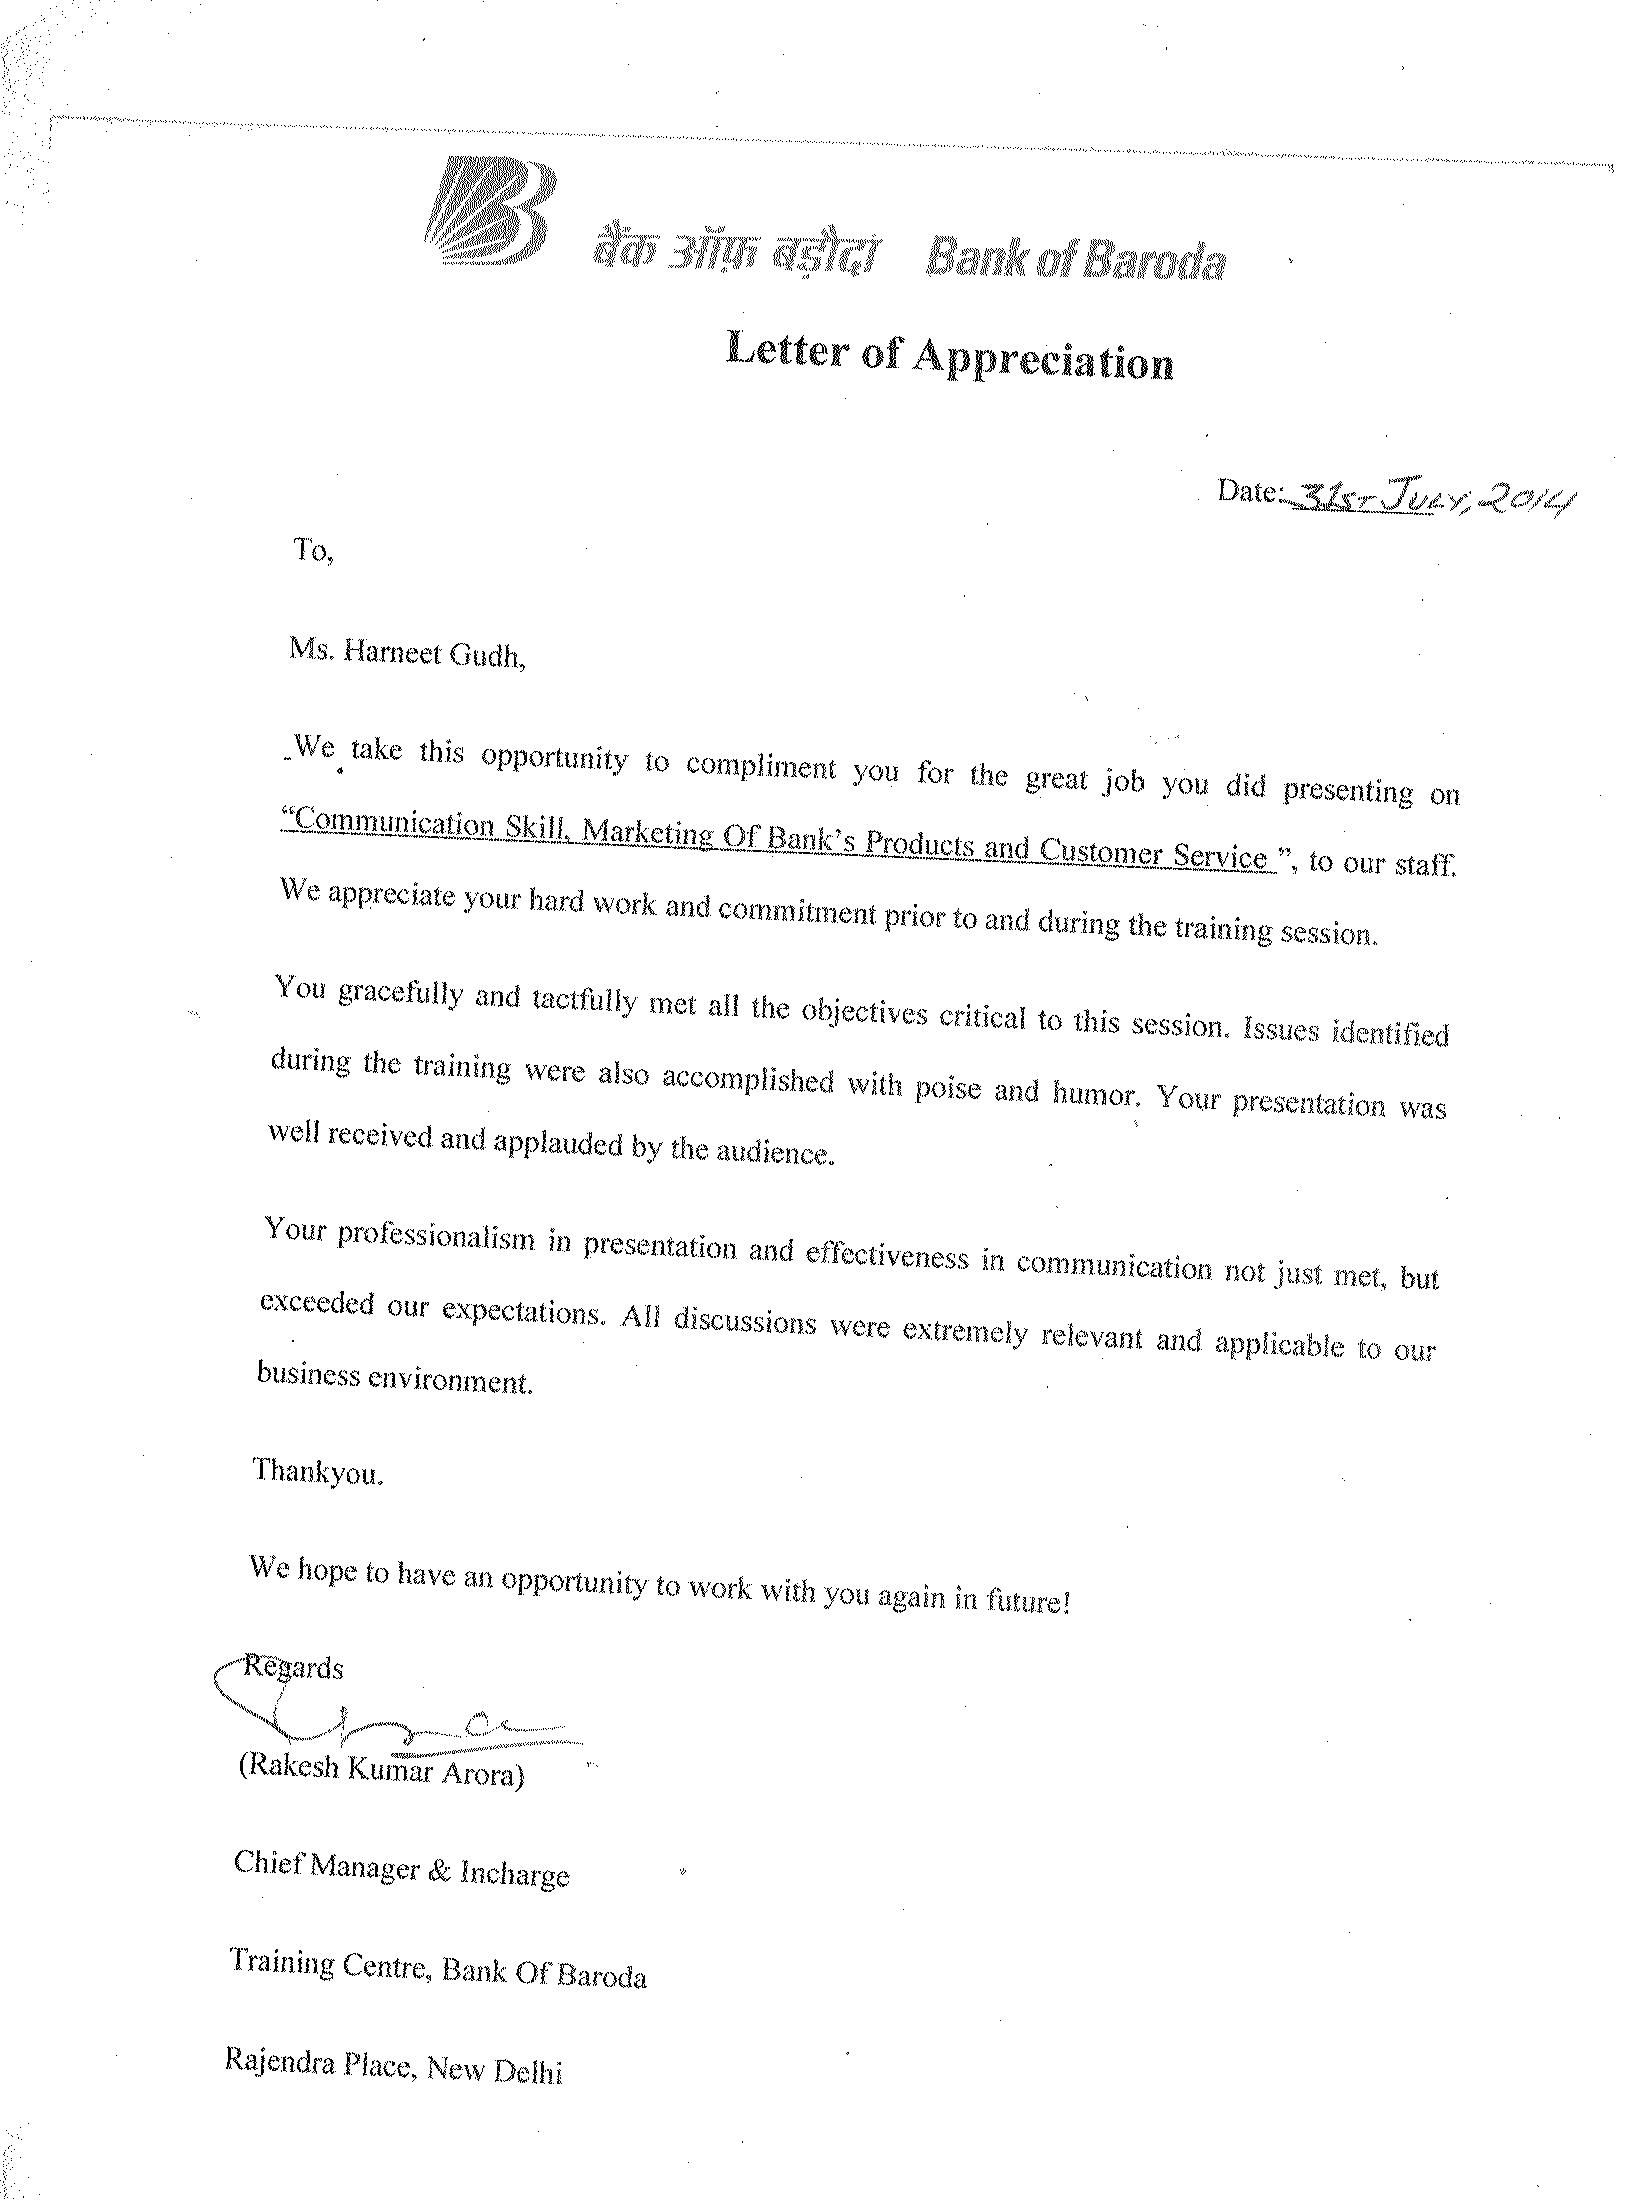 Appreciation Letter Boss For Training From Chairman Istd Goa